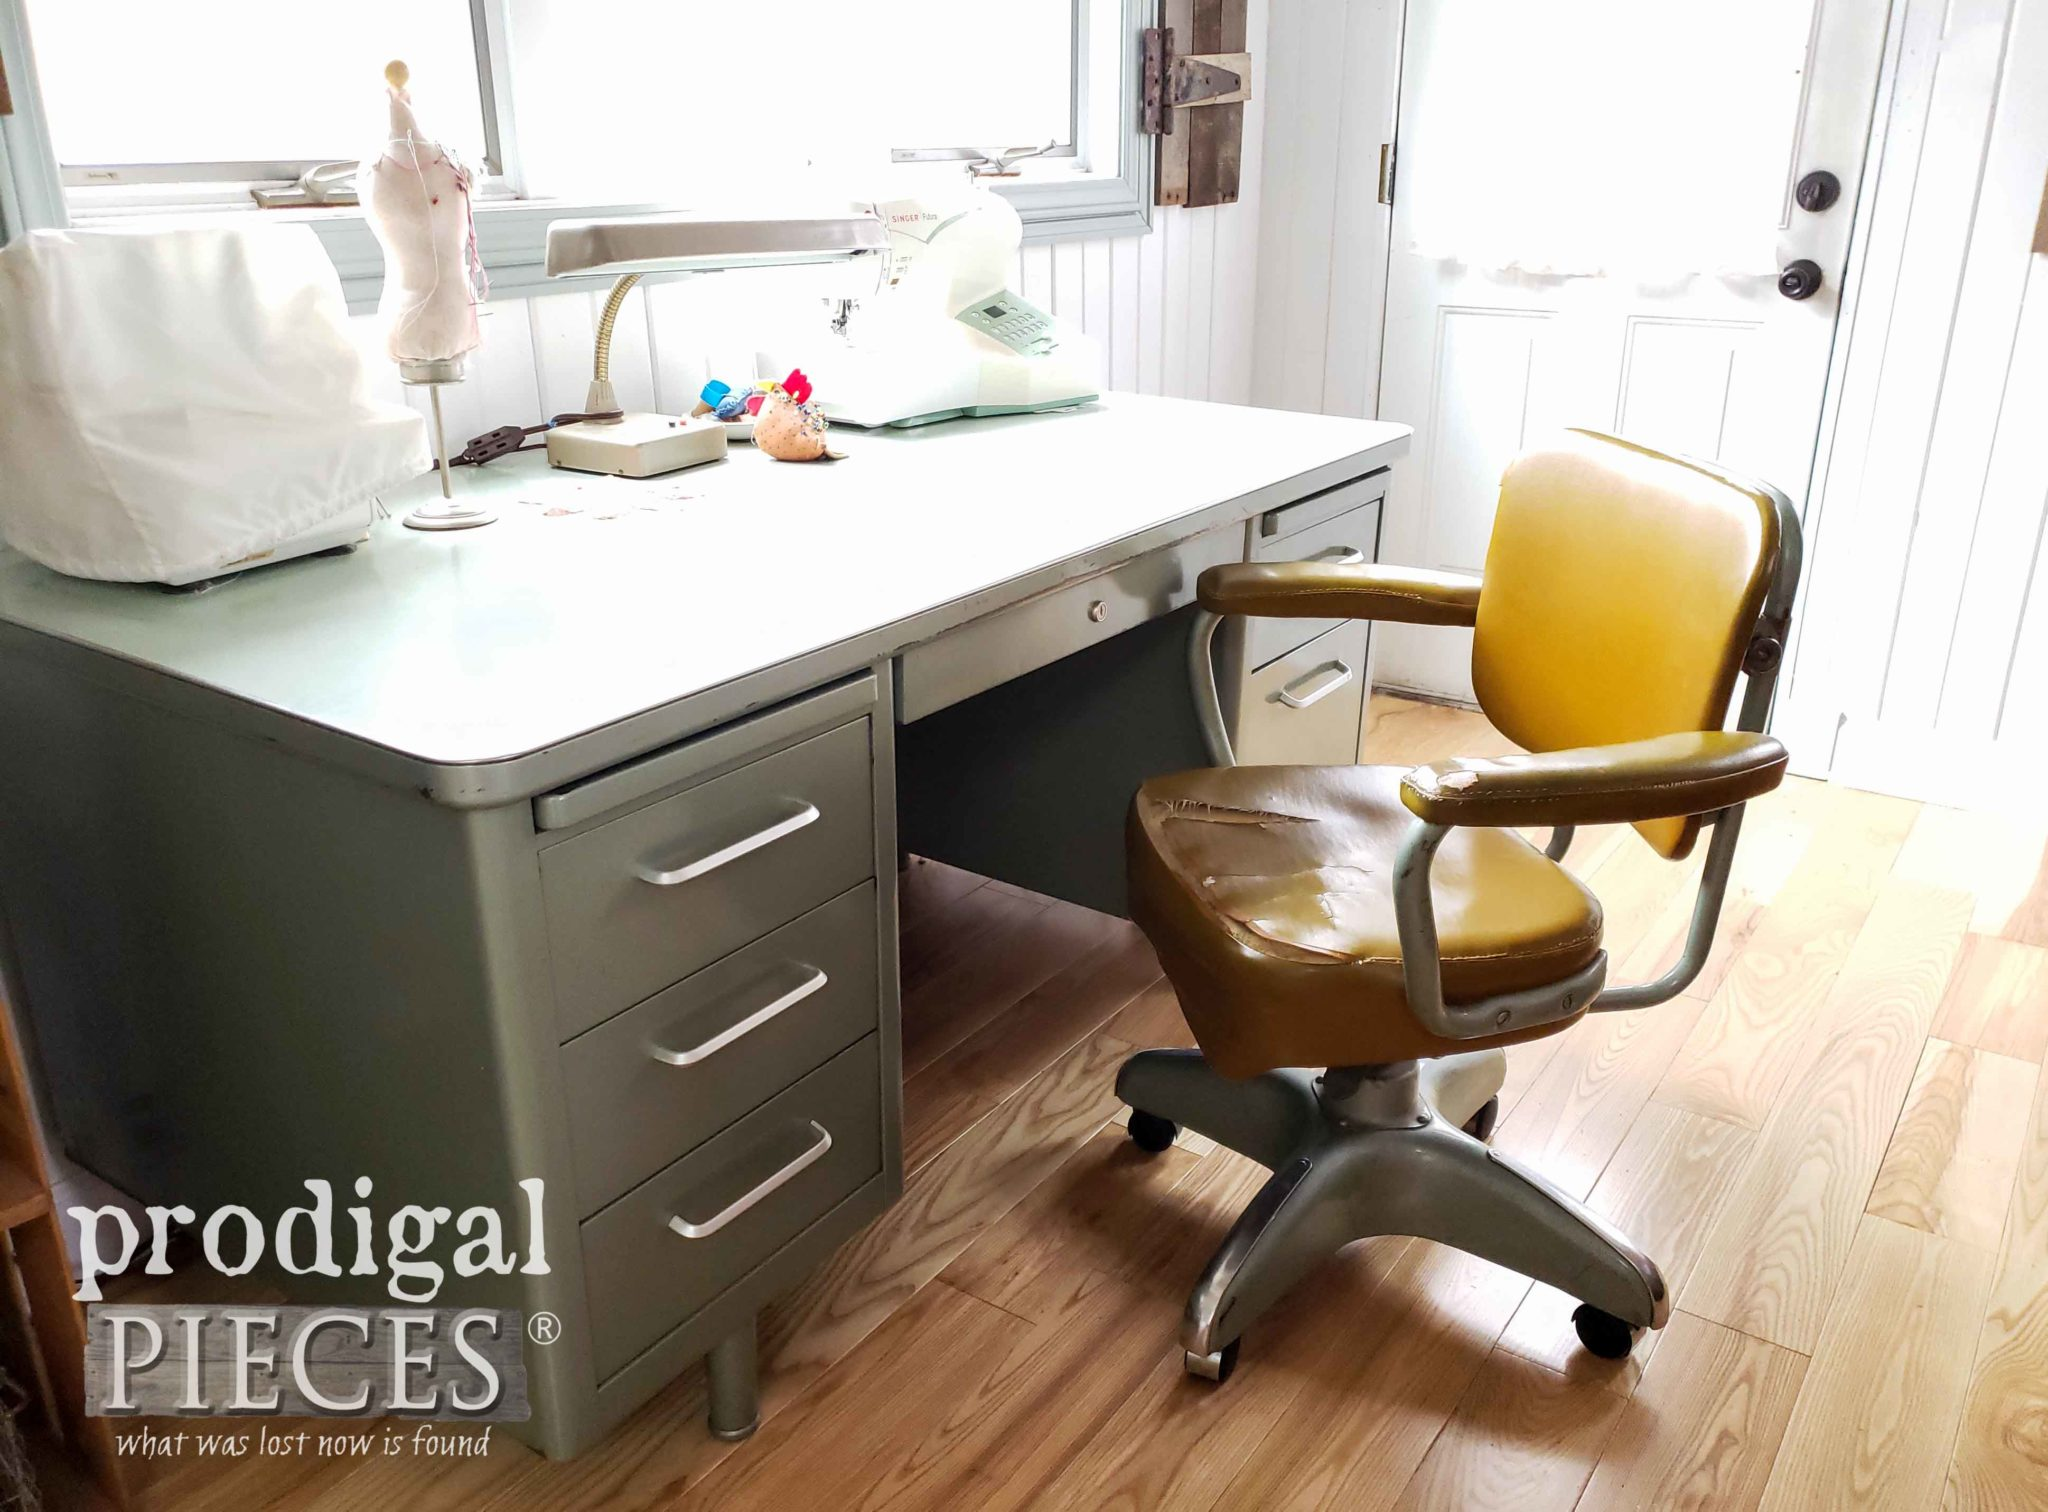 Industrial Desk Chair Before Makeover by Prodigal Pieces | prodigalpieces.com